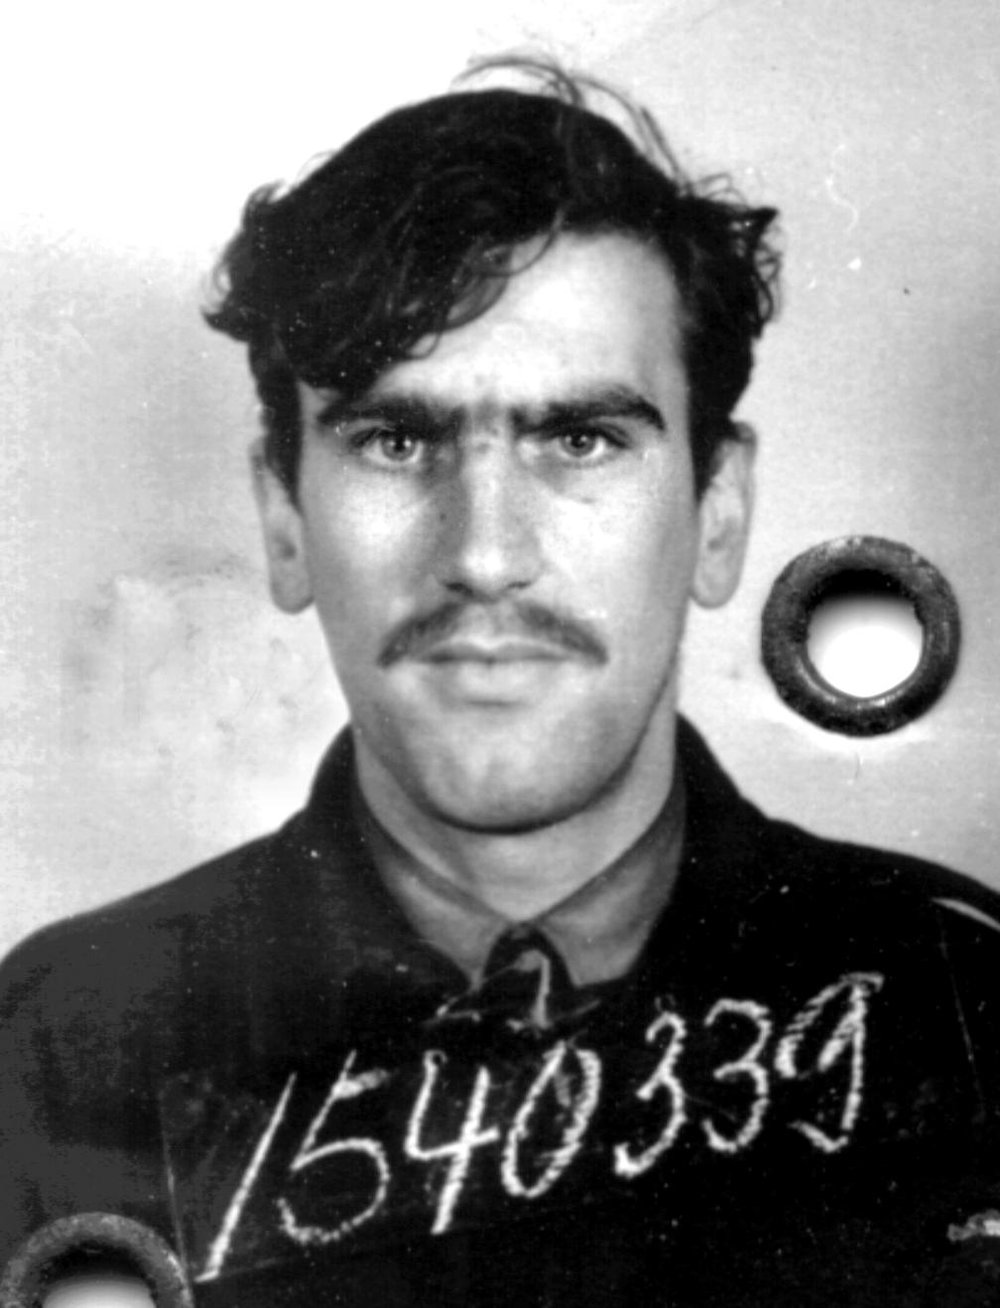 My dad's Prisoner of War ID photo